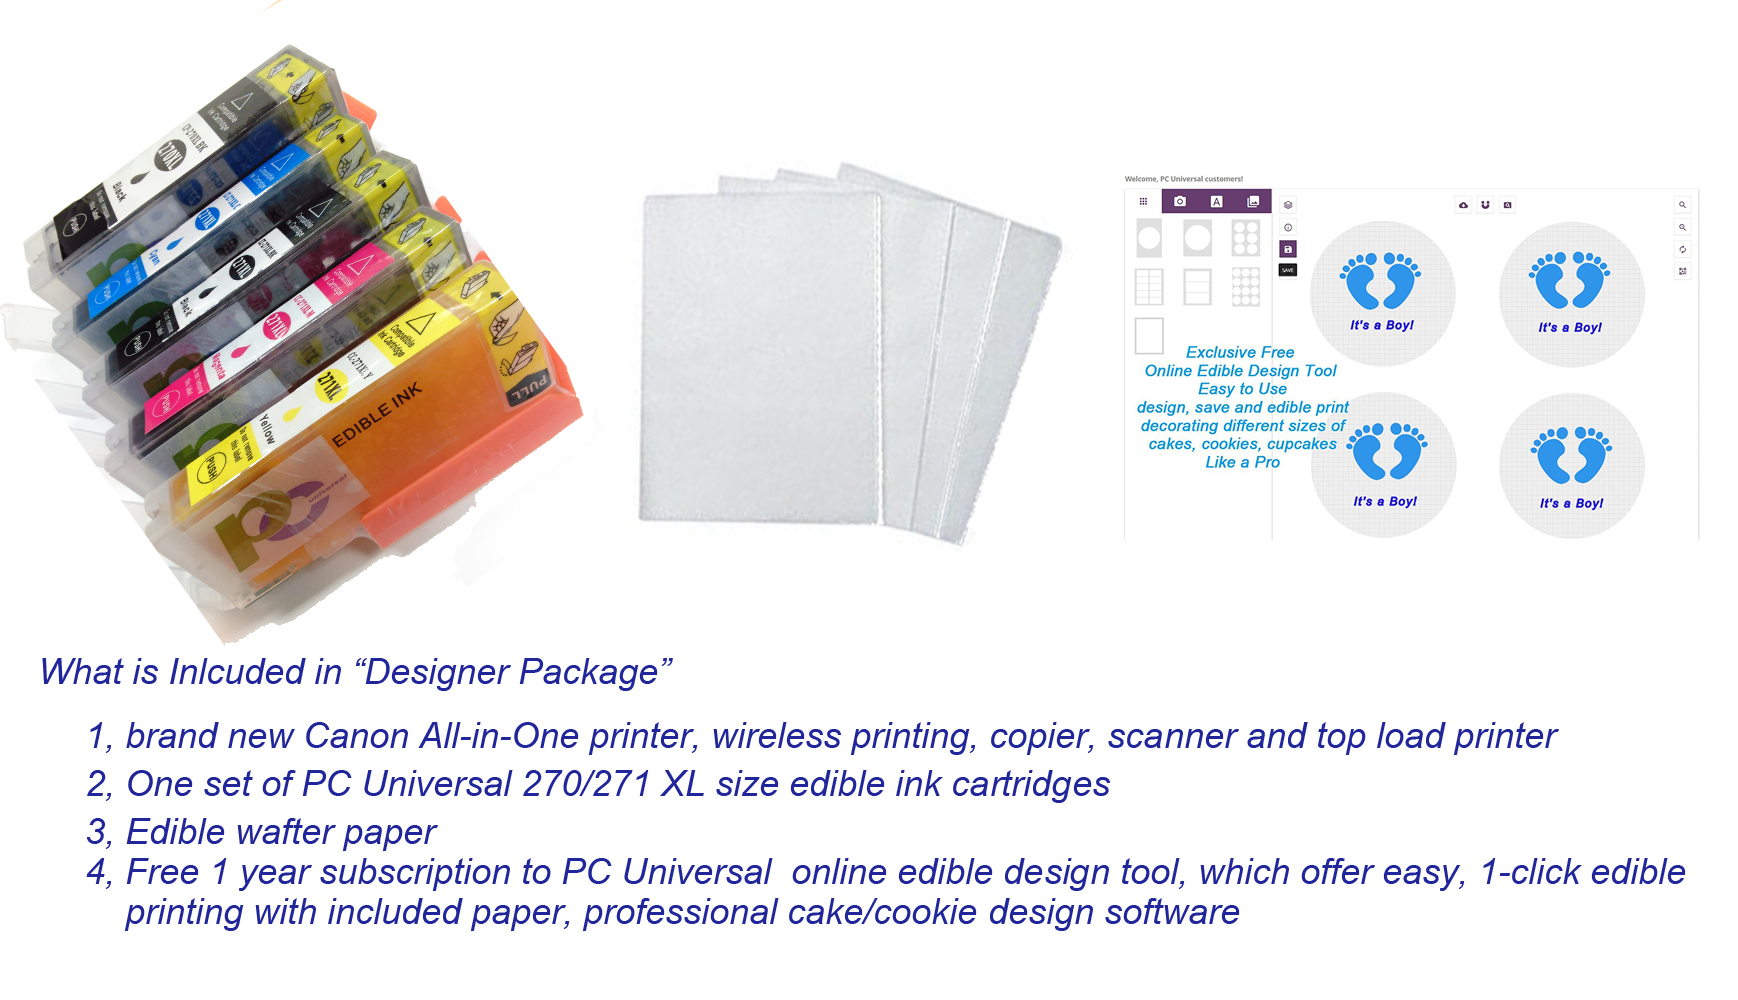 photograph relating to Edible Printable Paper for Cakes named Edible Printer Deal- Manufacturer Contemporary Canon All-within-Just one Printer with Edible Paper and Inks via Computer Common